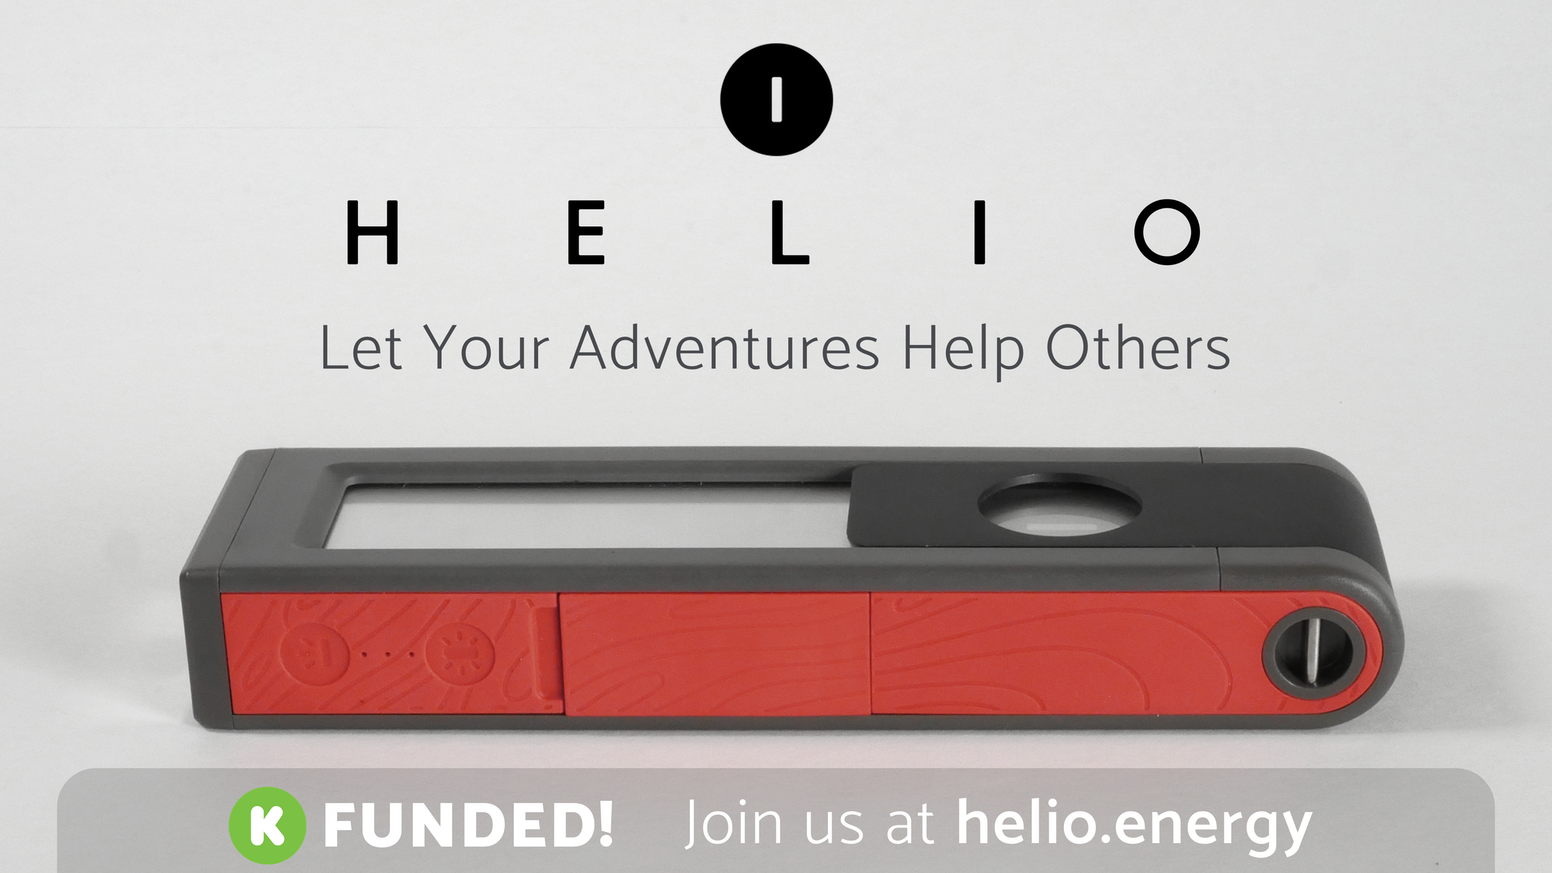 You get a great Adventure & Emergency light, and Makers4Good uses ALL profits to send light and power to people in need.